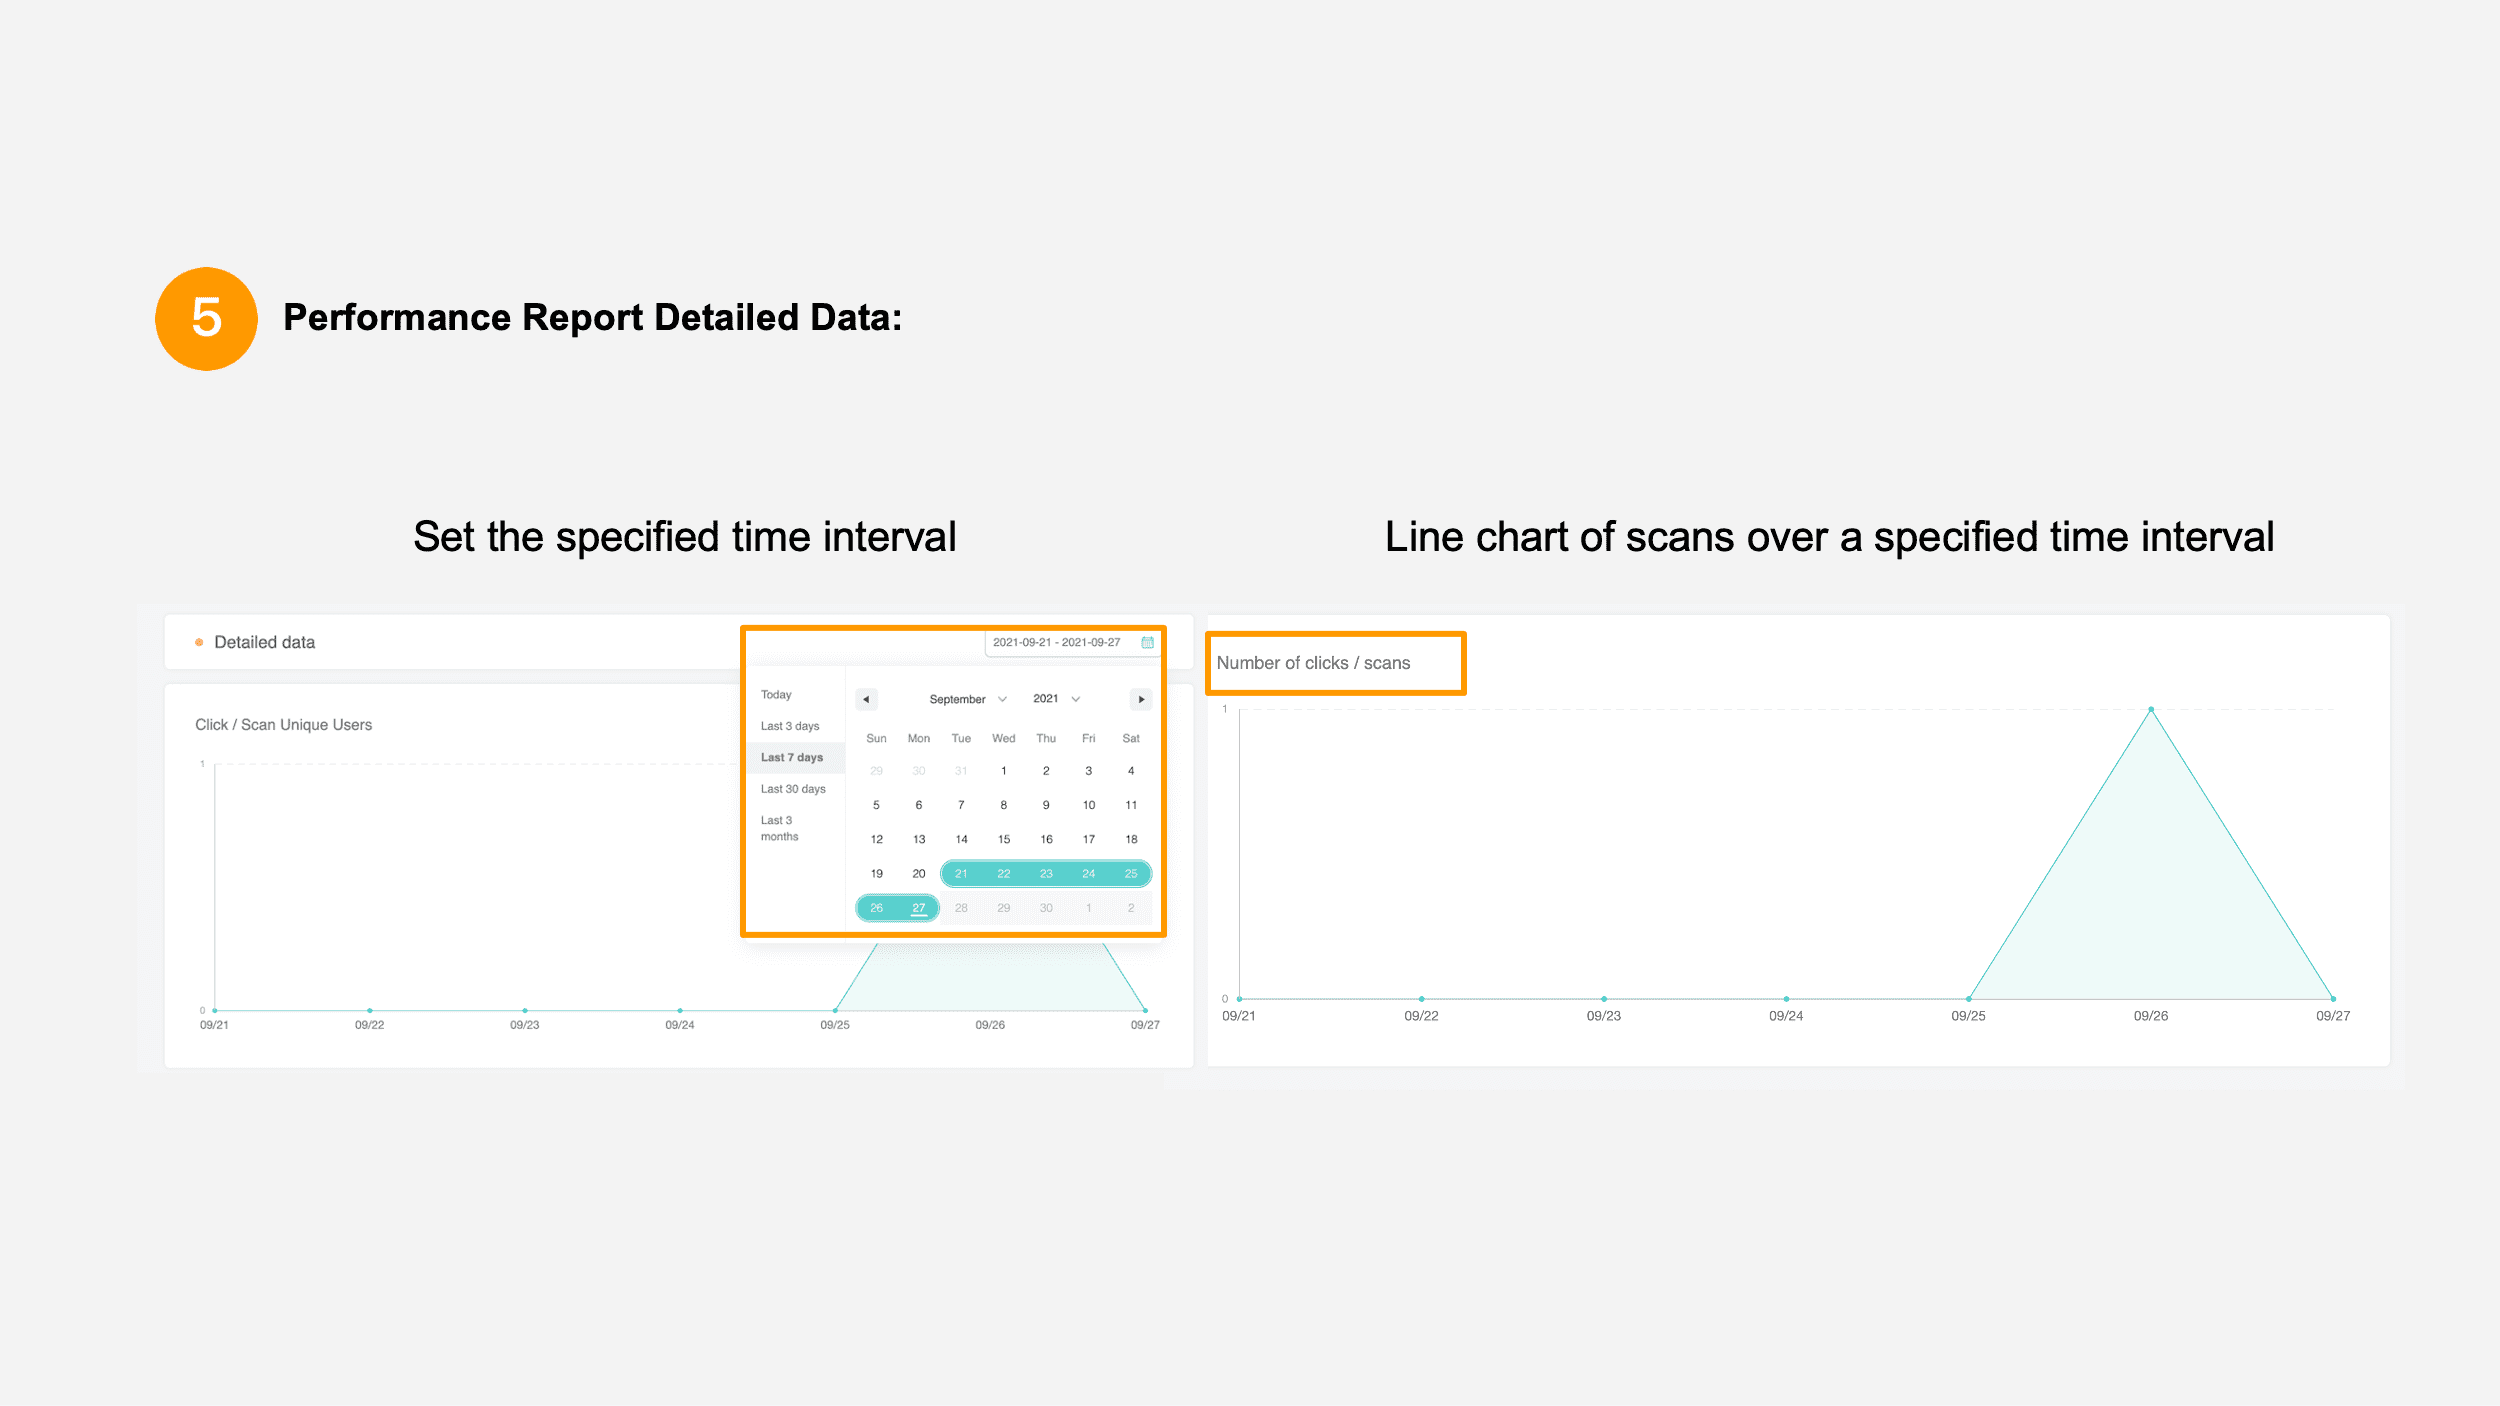 Detailed data over the specified time period: Unique users/Times scanned